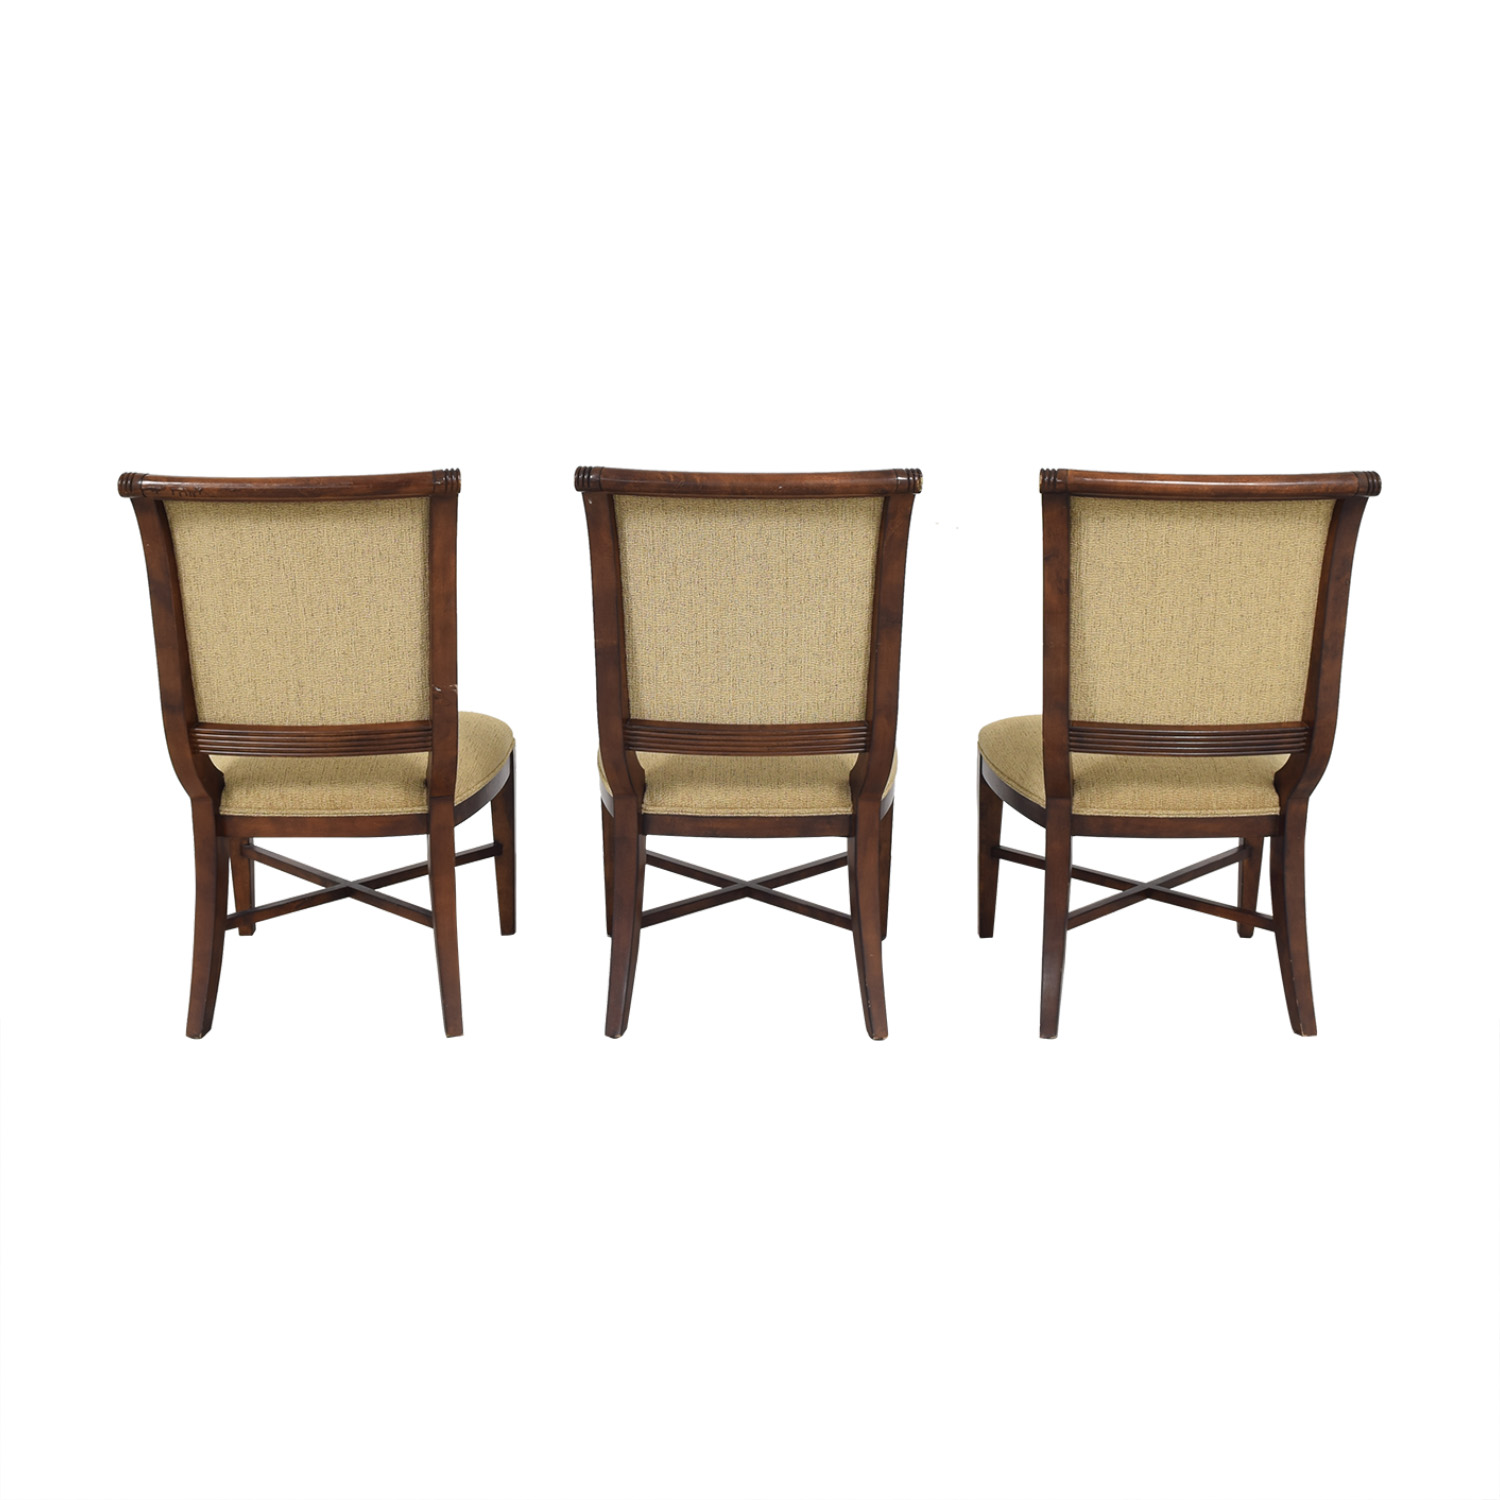 Lexington Furniture Lexington Furniture Upholstered Dining Chairs pa